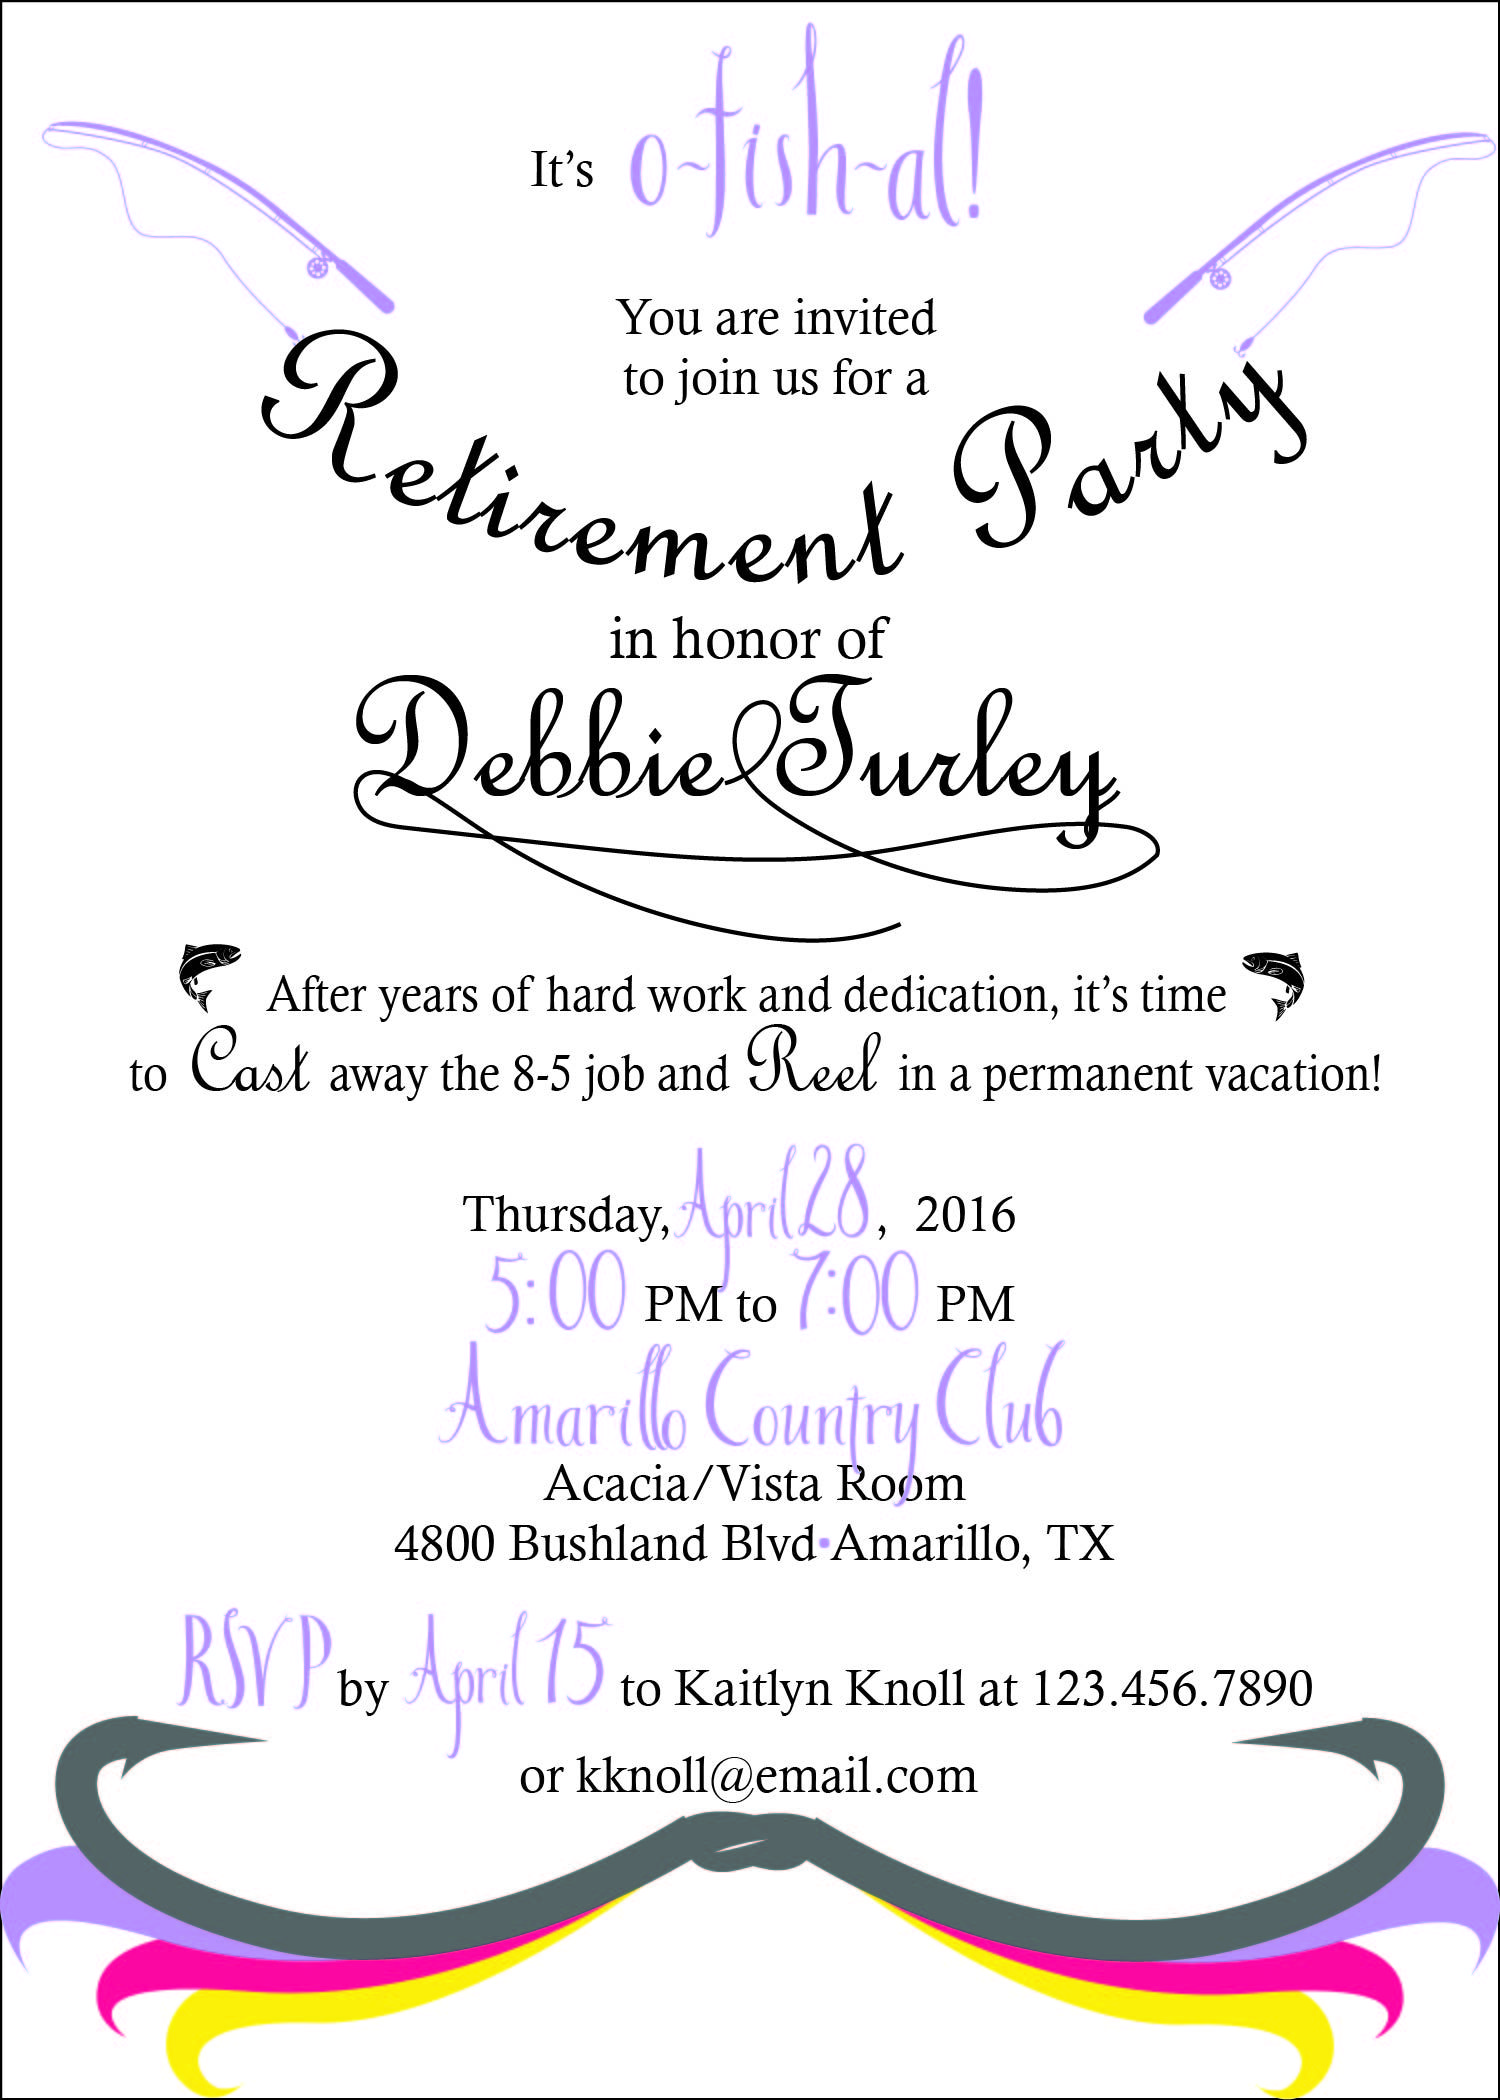 Fly fishing themed retirement party invitation   Retirement ...